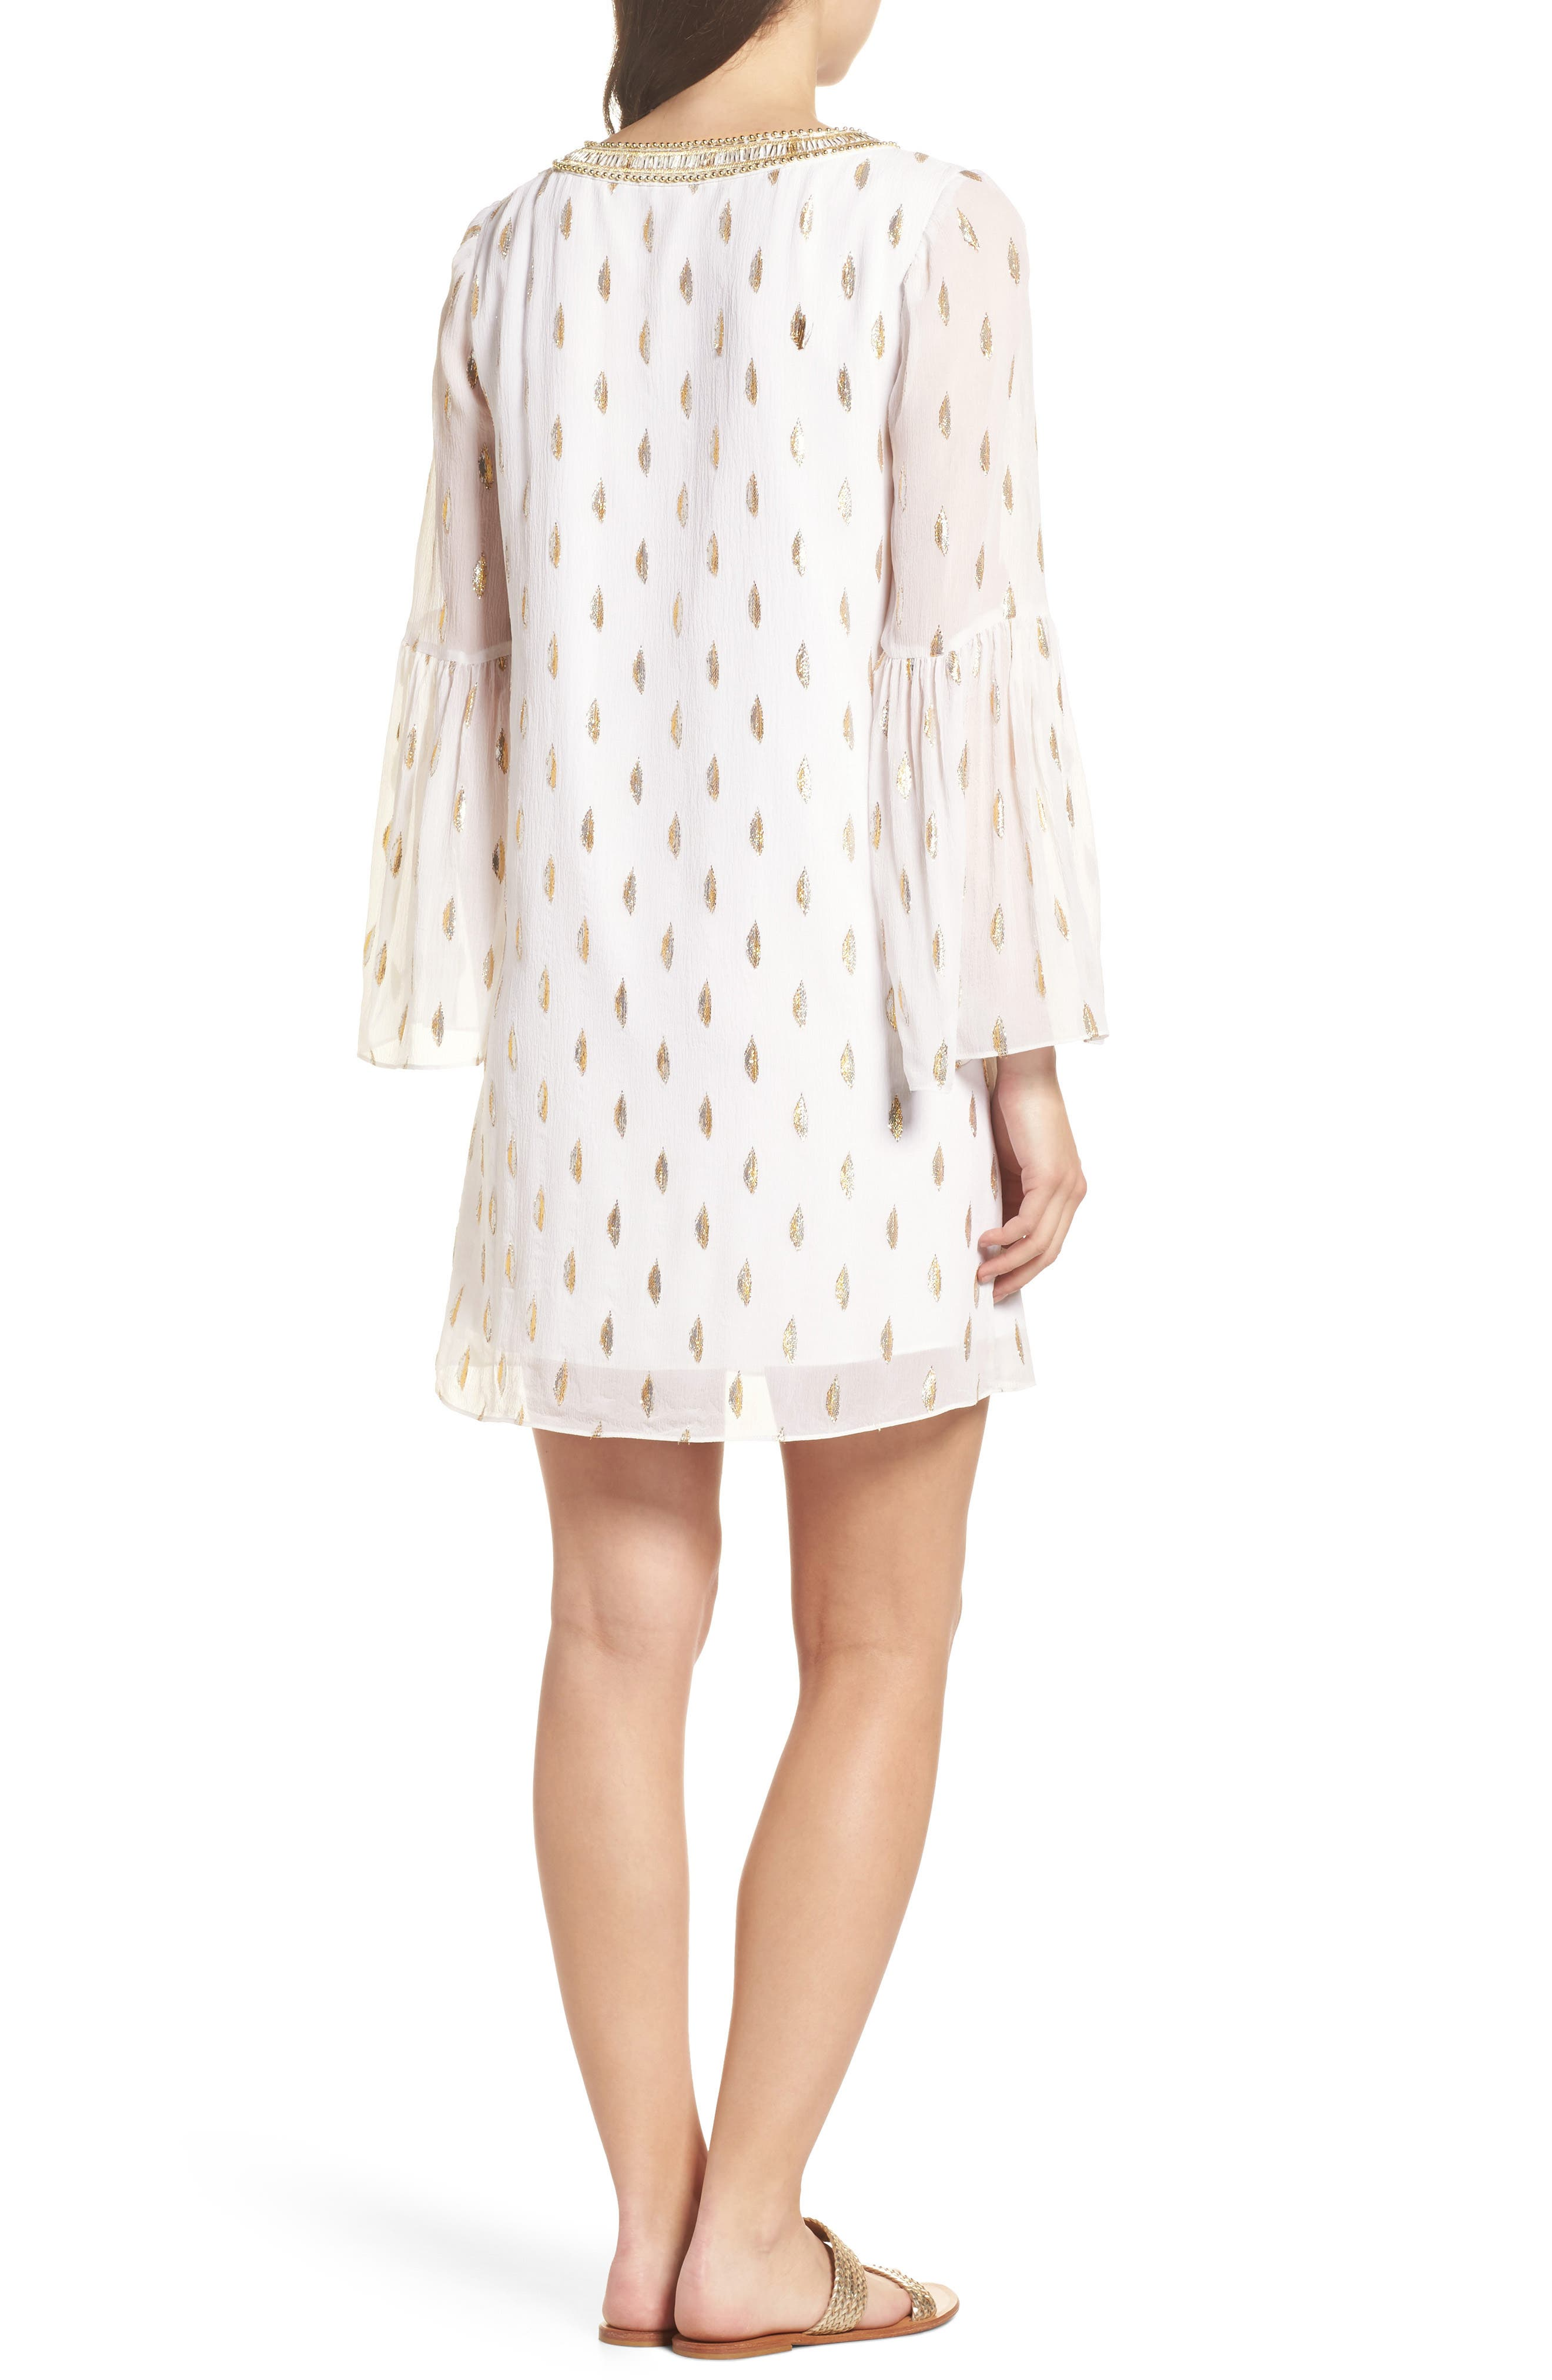 Amory Silk Tunic Dress,                             Alternate thumbnail 2, color,                             Resort White Diamond Metallic